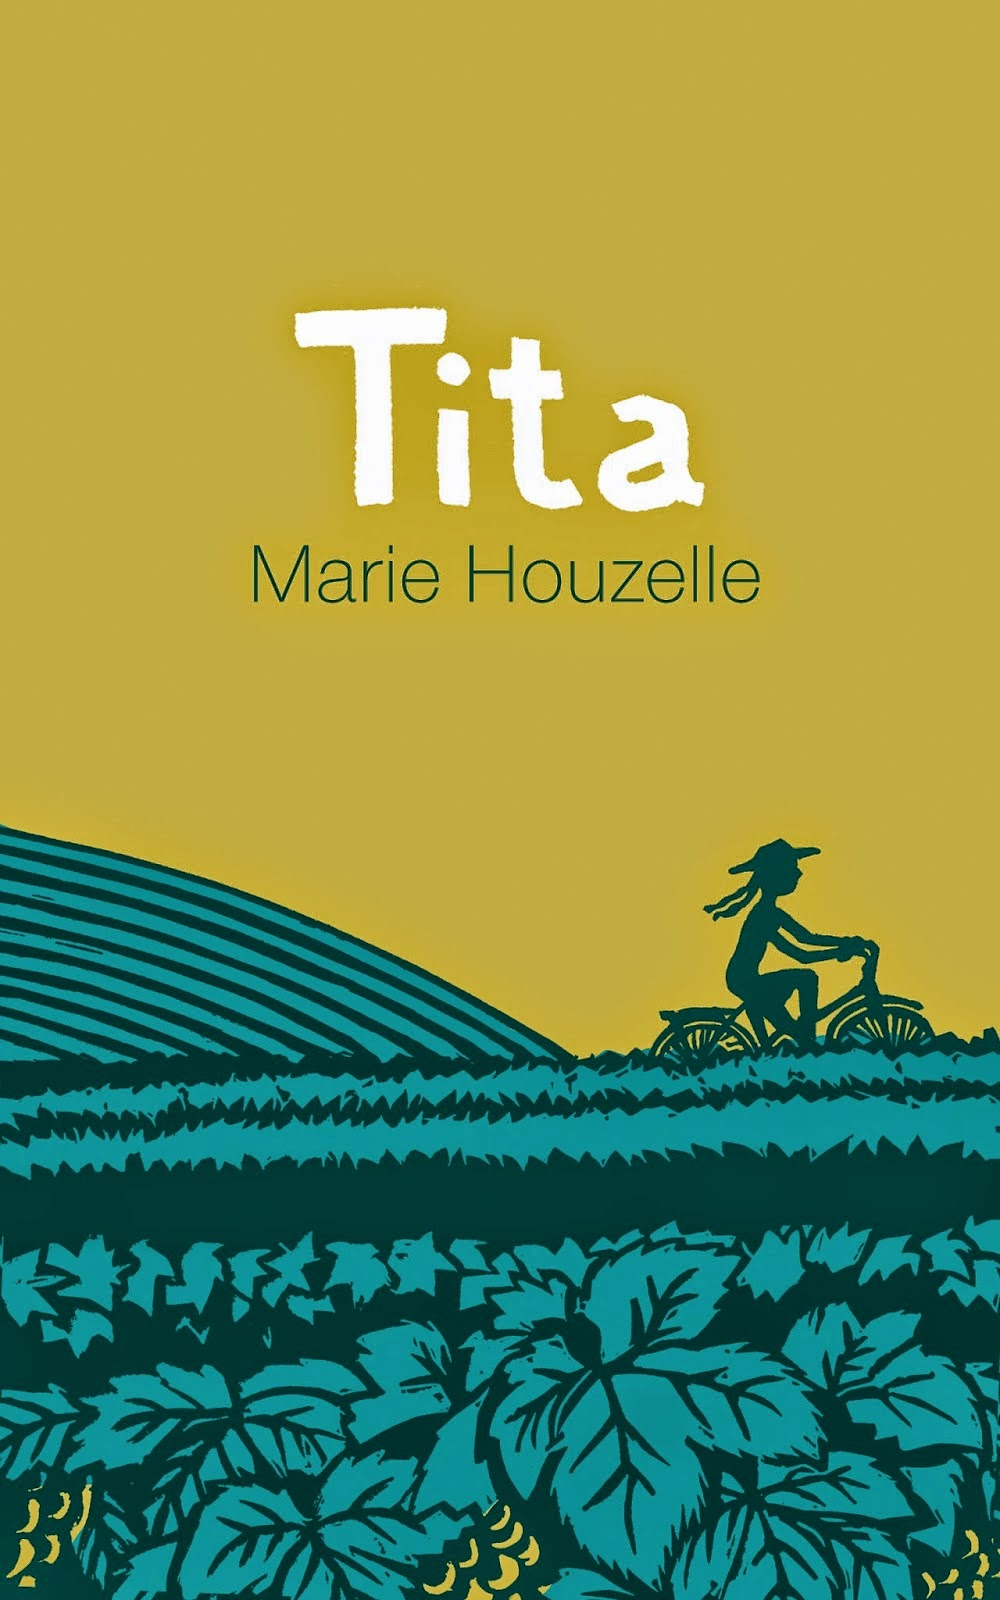 NEW! TITA! French author Marie Houzelle's English novel dazzles the Ango writing community!